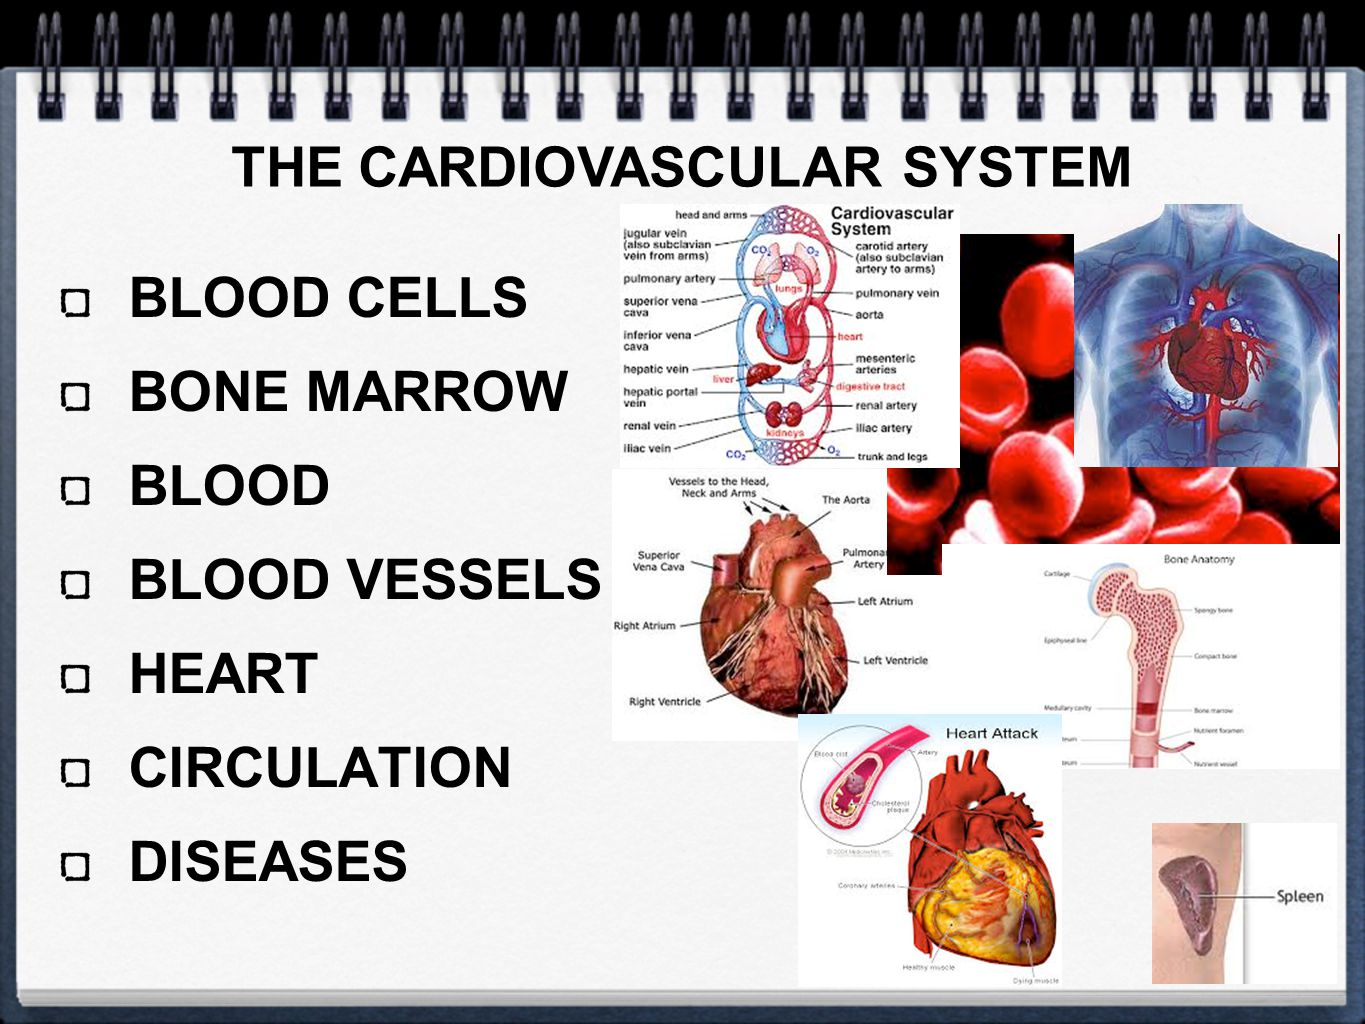 BLOOD CELLS BONE MARROW BLOOD BLOOD VESSELS HEART CIRCULATION DISEASES THE CARDIOVASCULAR SYSTEM